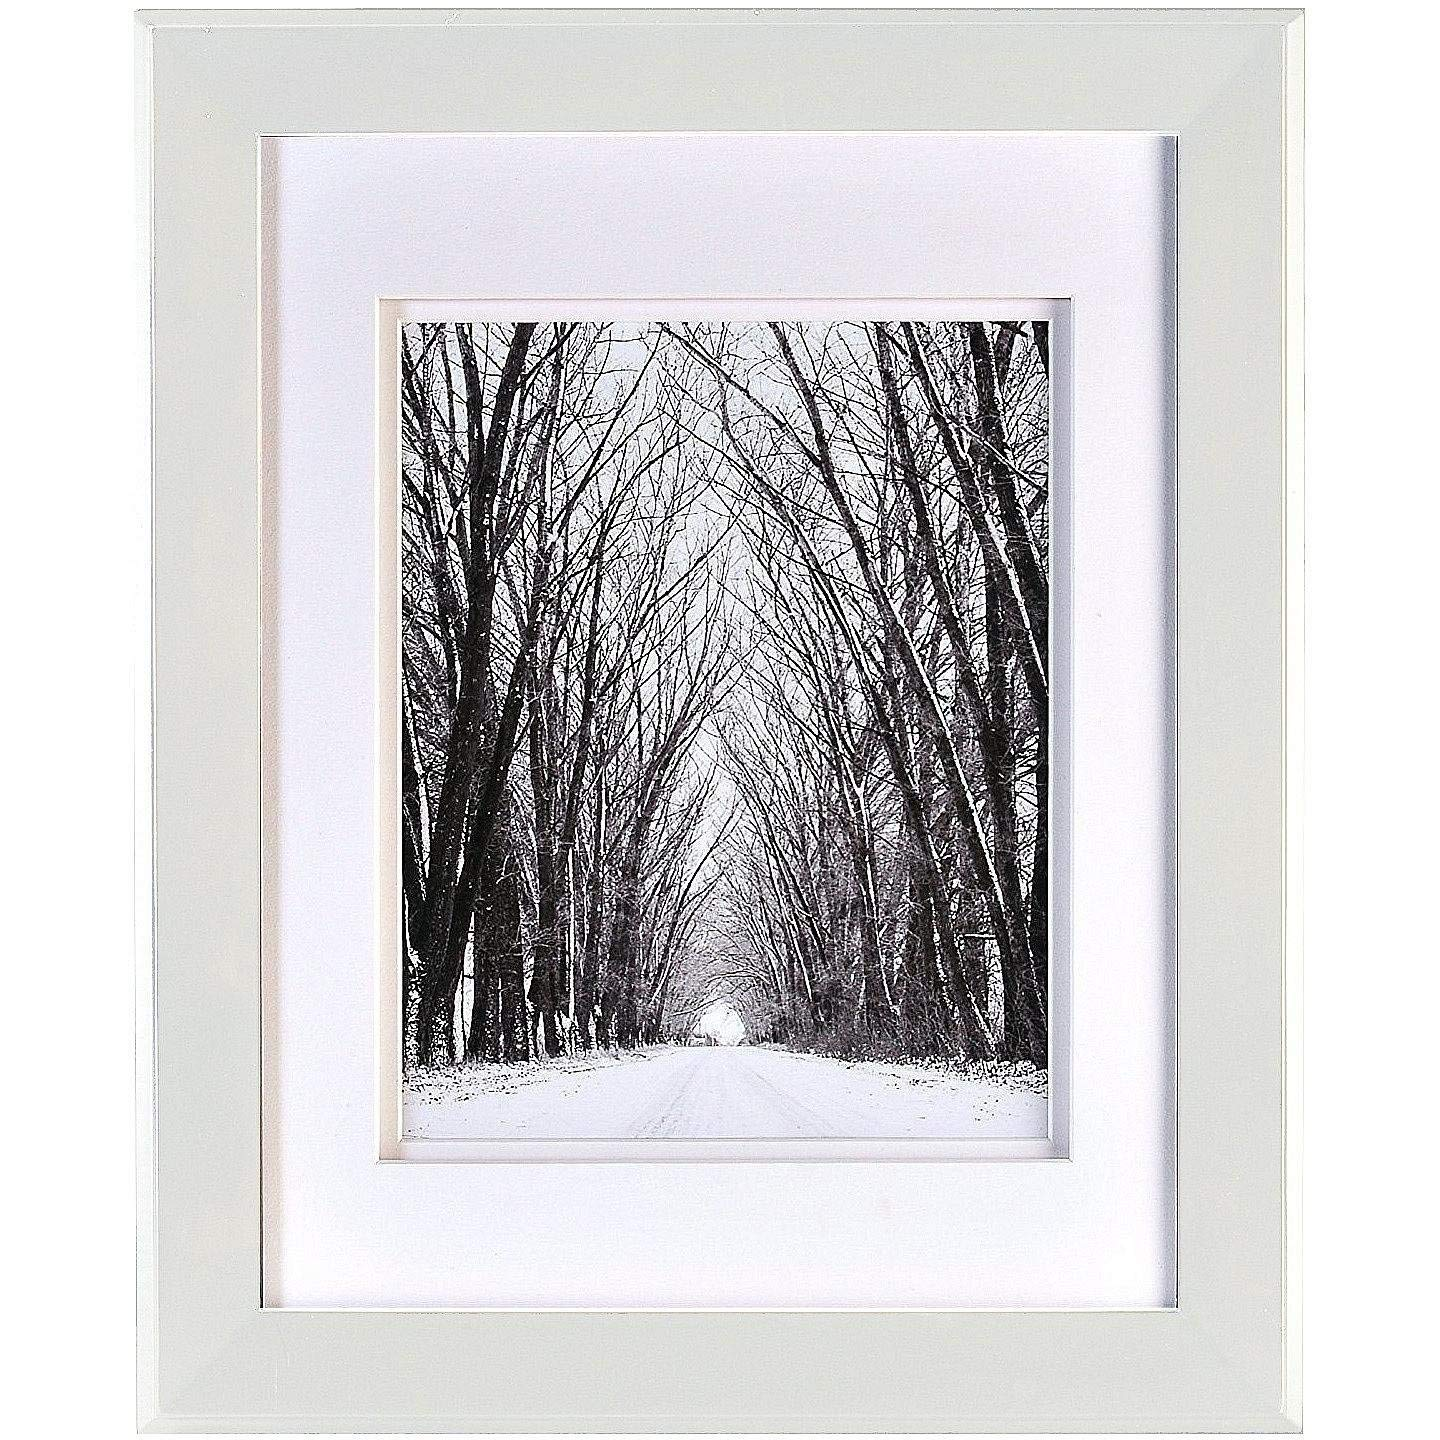 Cheap 16x20 Matted Frame Find 16x20 Matted Frame Deals On Line At